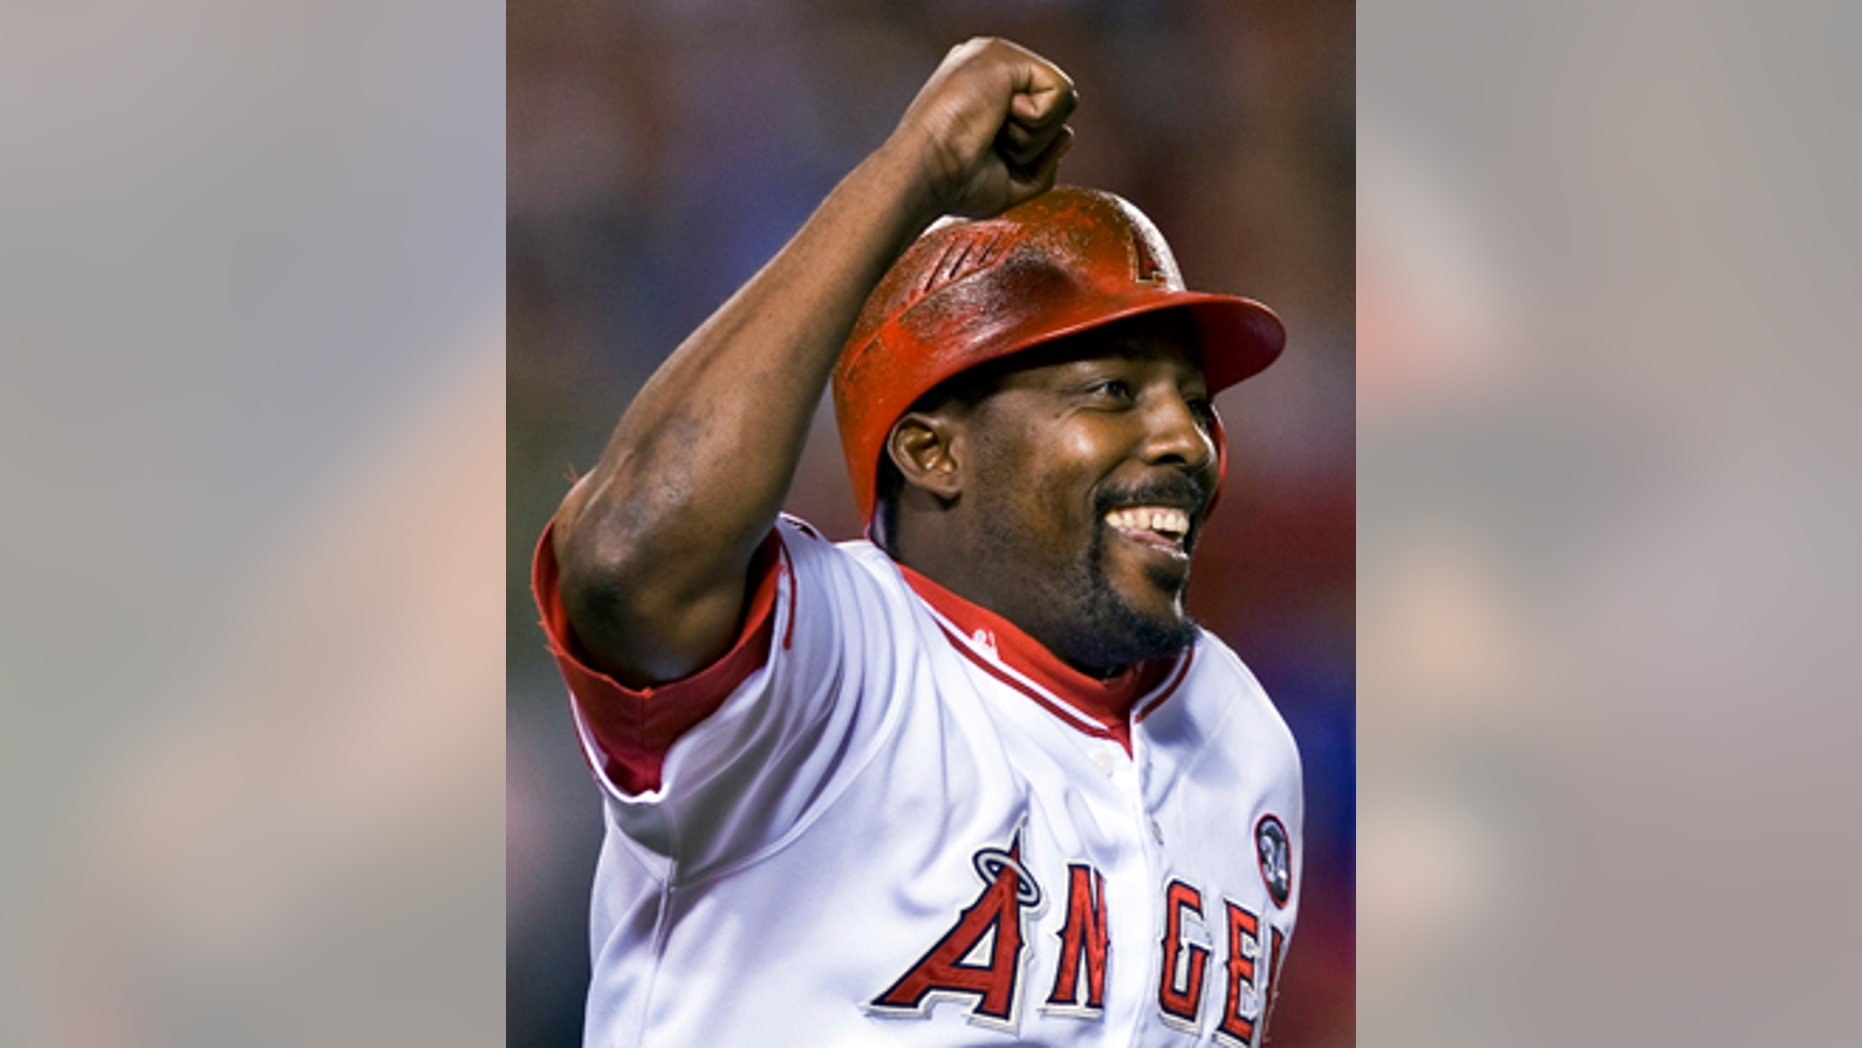 FILE - In this Aug. 10, 2009, file photo, Los Angeles Angels' Vladimir Guerrero celebrates hitting his 400th career home run in the seventh inning of a baseball game against the Tampa Bay Rays,  in Anaheim, Calif. Steroids-tainted stars Manny Ramirez and Ivan Rodriguez are on baseball's Hall of Fame ballot for the first time along with Vladimir Guerrero. (AP Photo/Mark Avery, File)